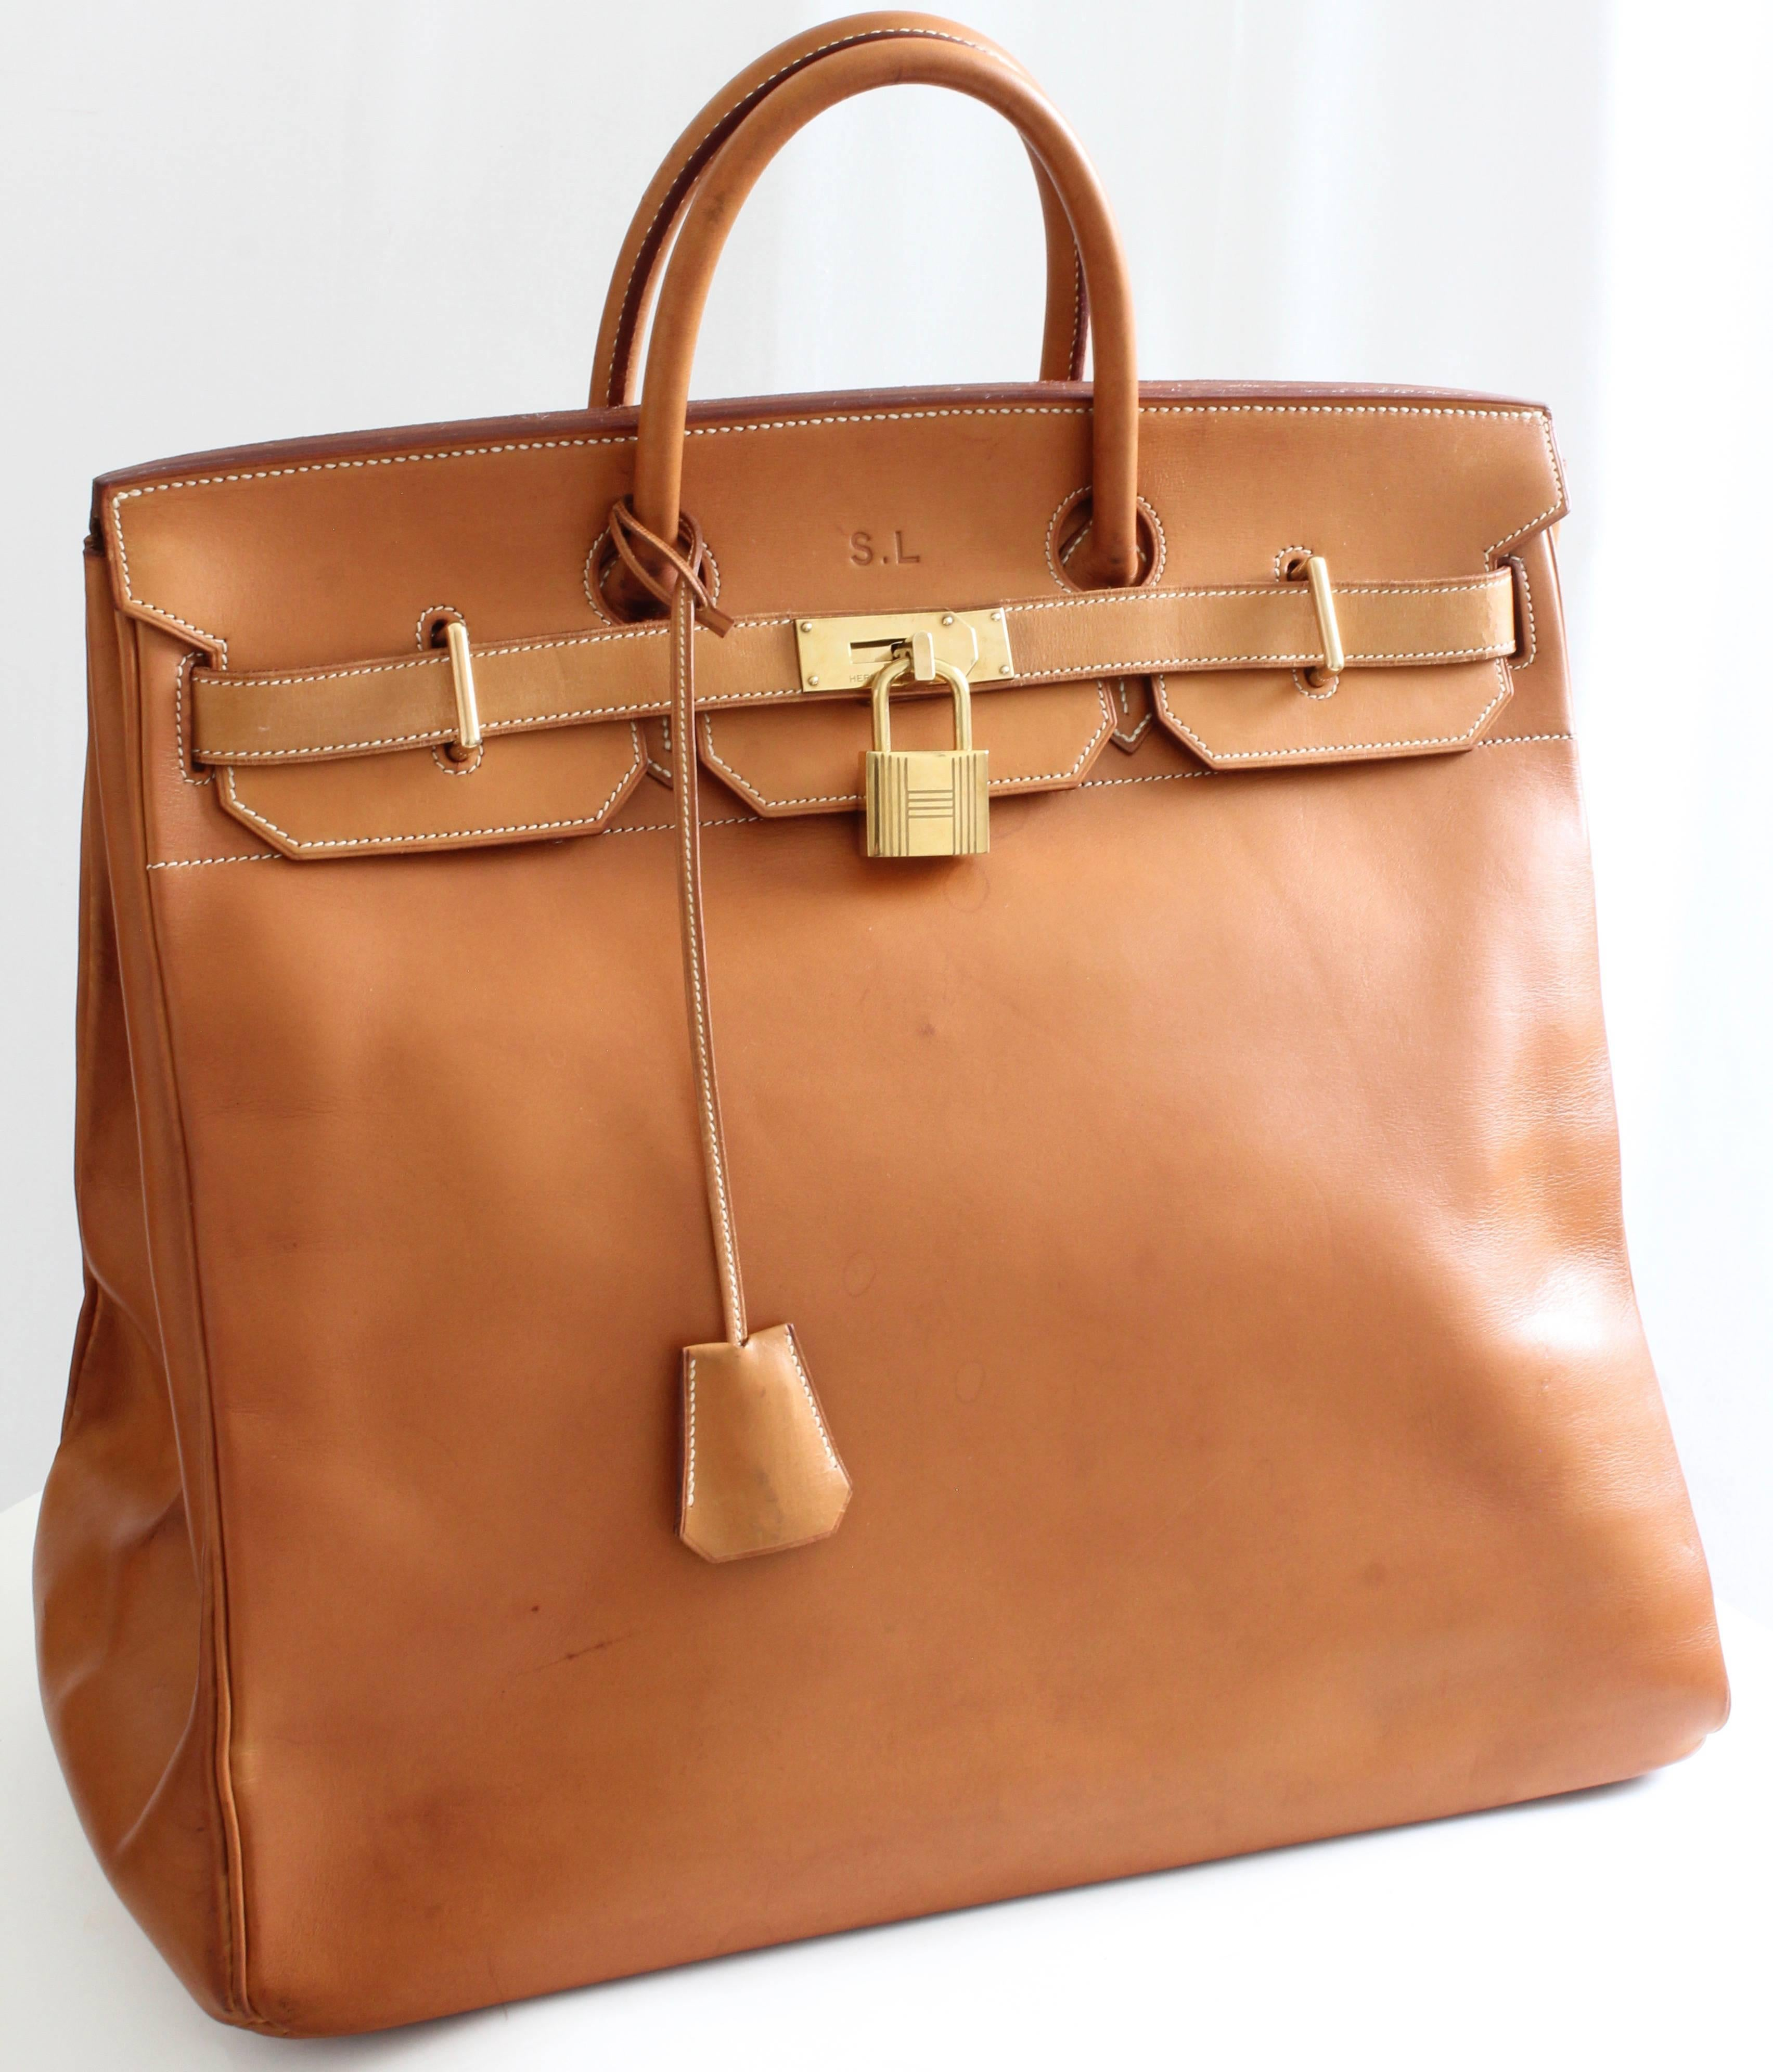 343c0f5d9f Hermes Haut A Courroies HAC 45cm Vache Natural Leather Travel Birkin Bag  For Sale at 1stdibs